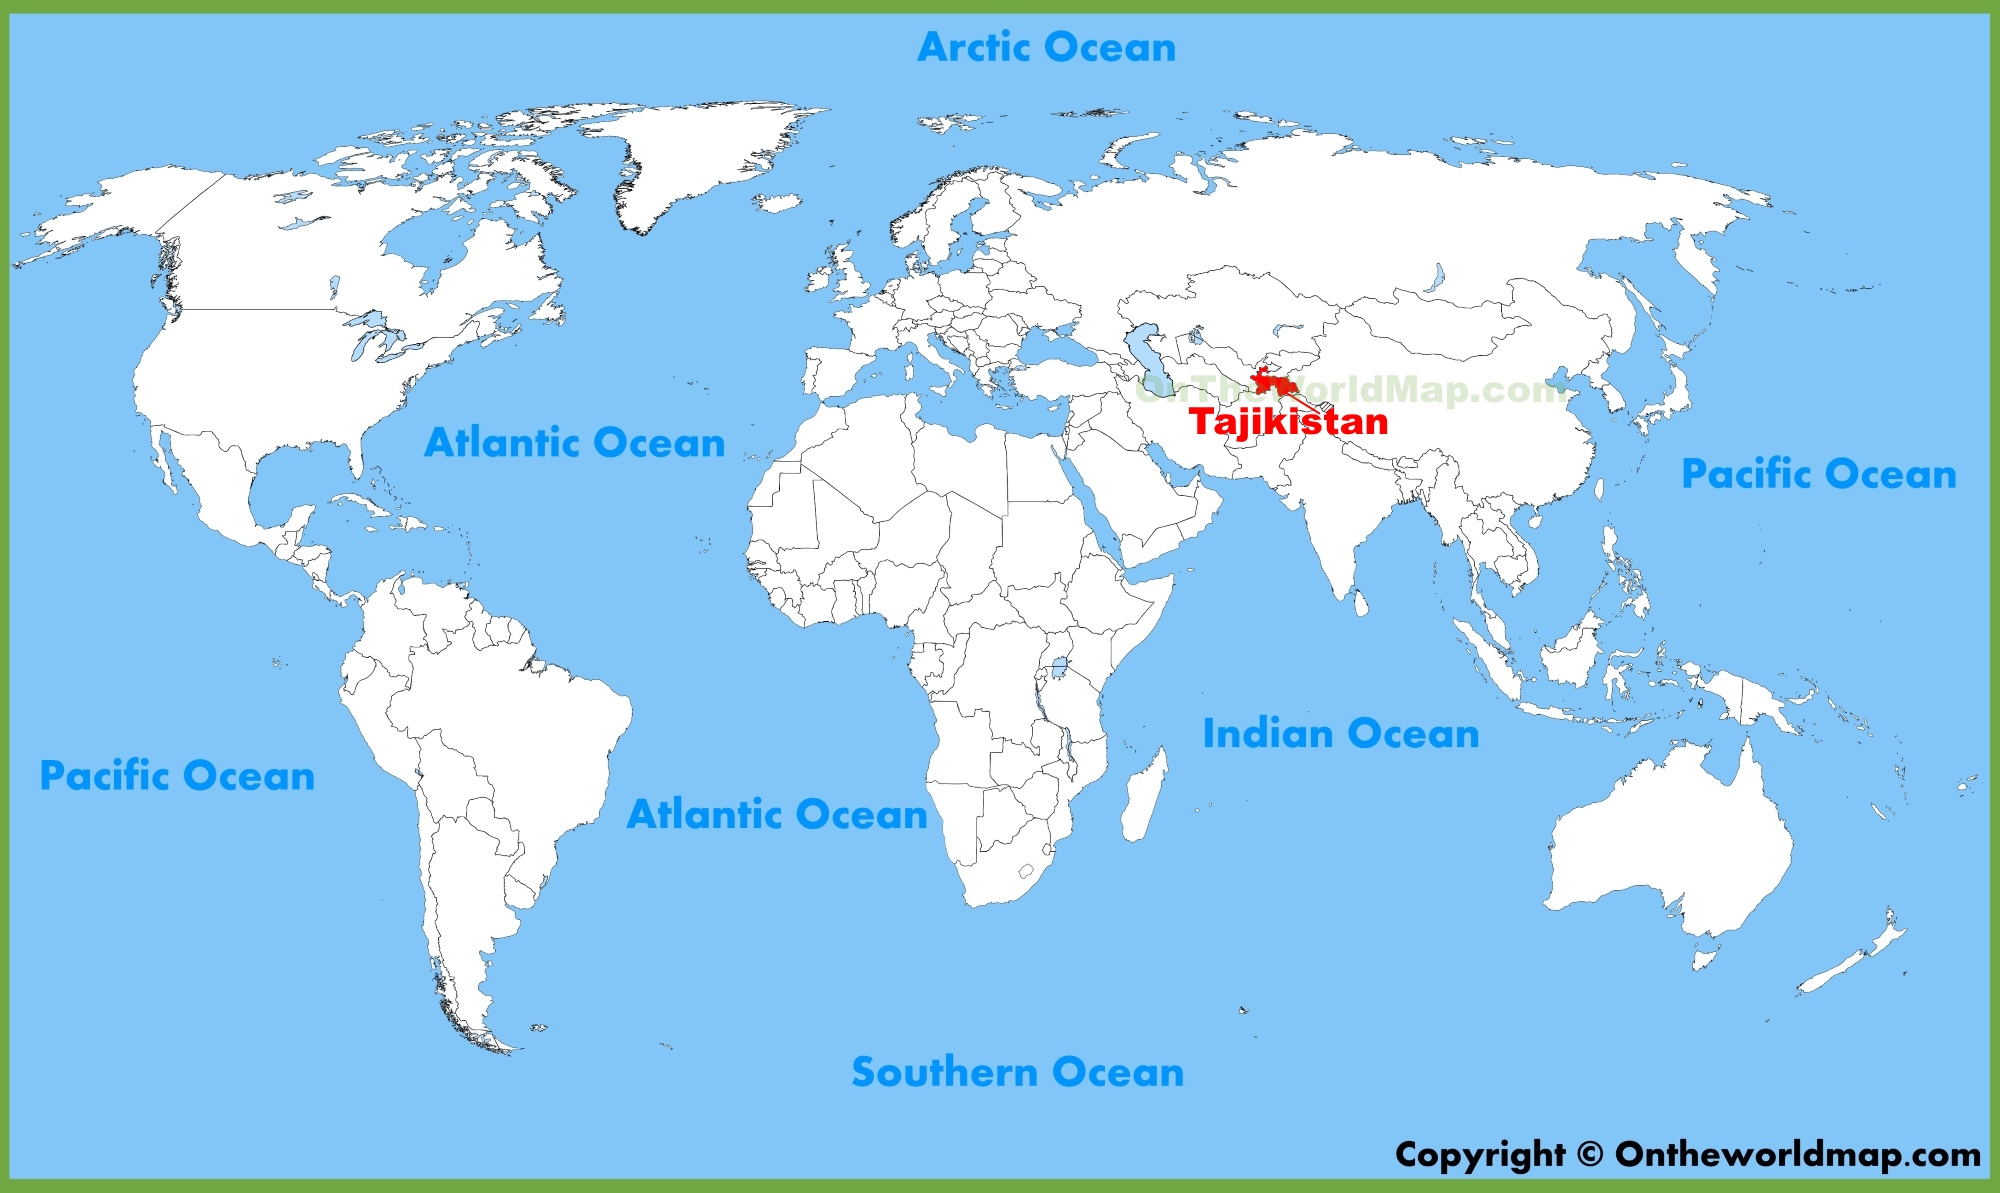 Tajikistan location on the World Map